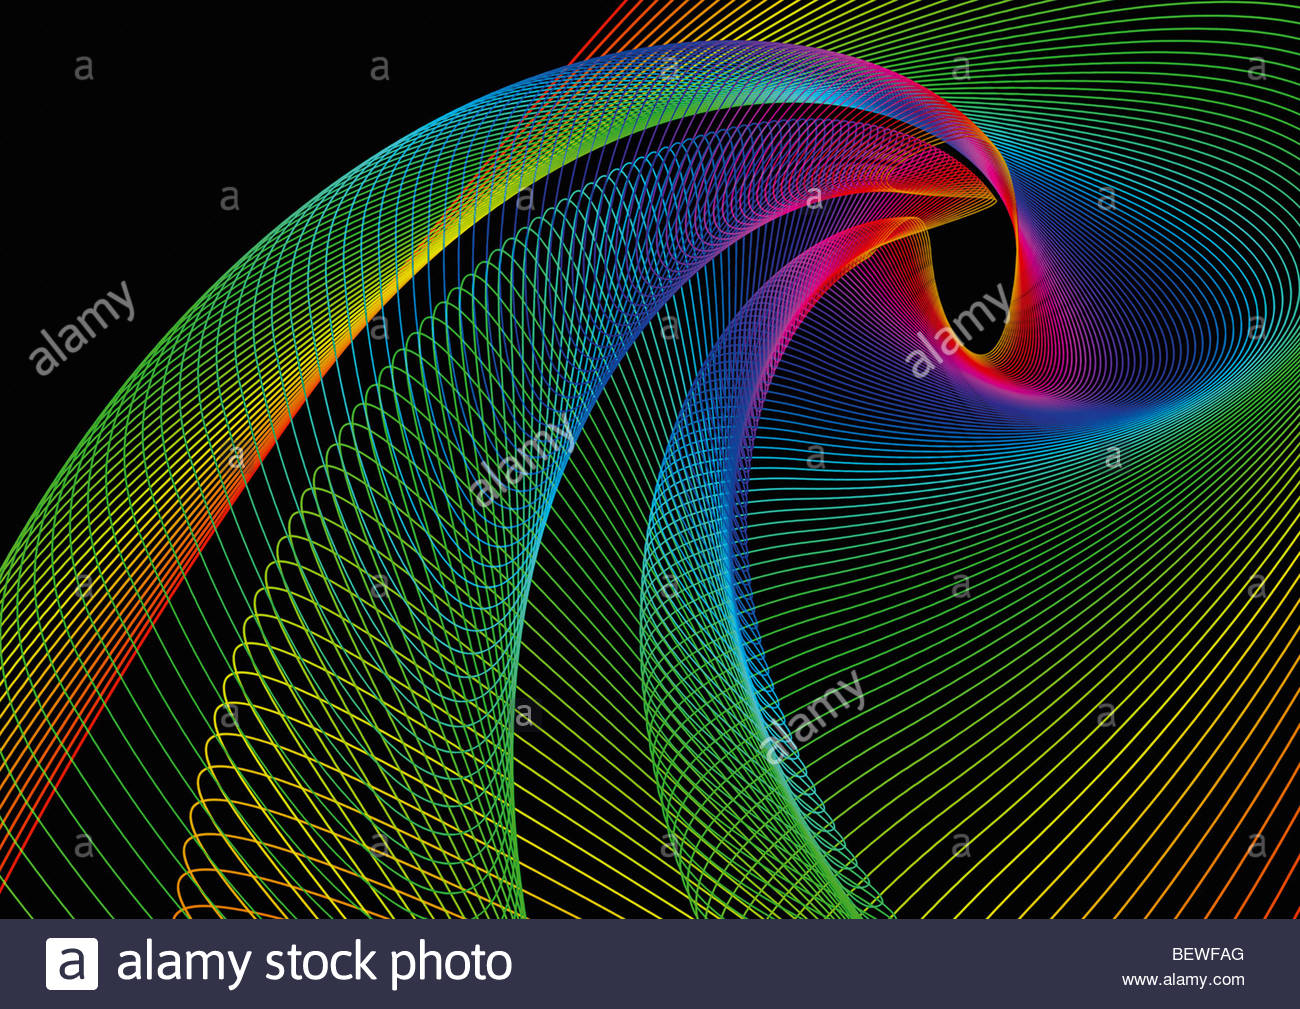 Swirling rainbow colored lines - Stock Image